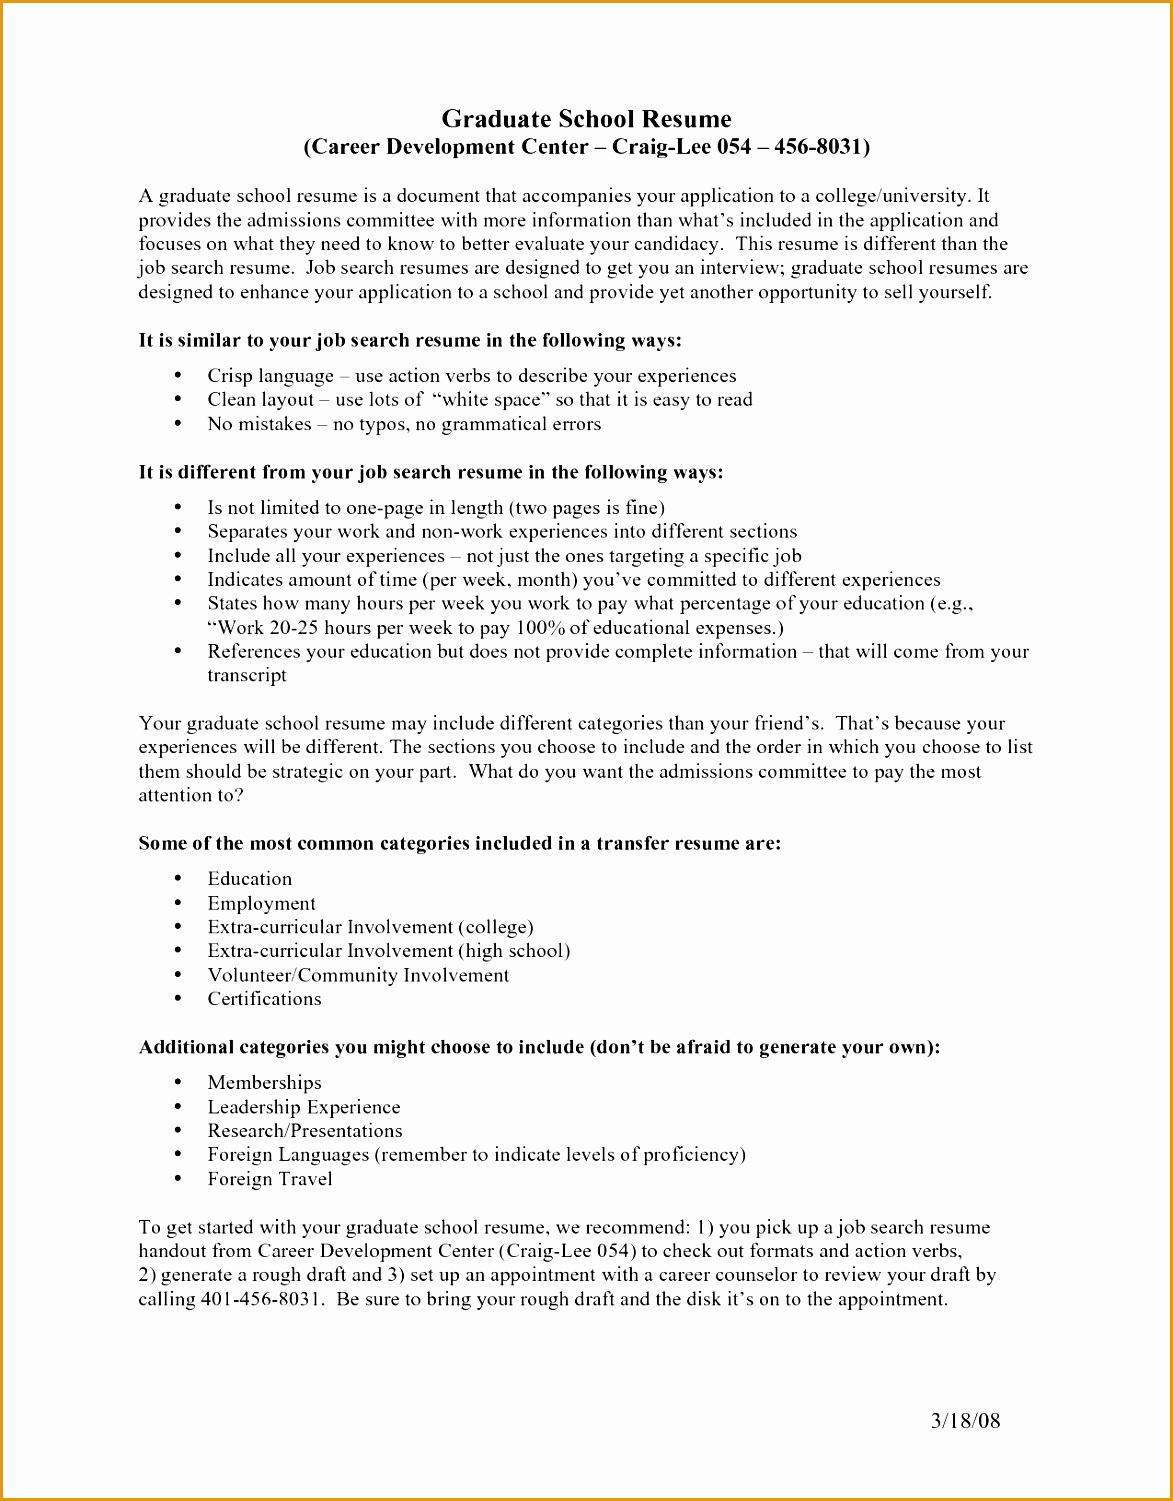 resume template for graduate school application external auditor